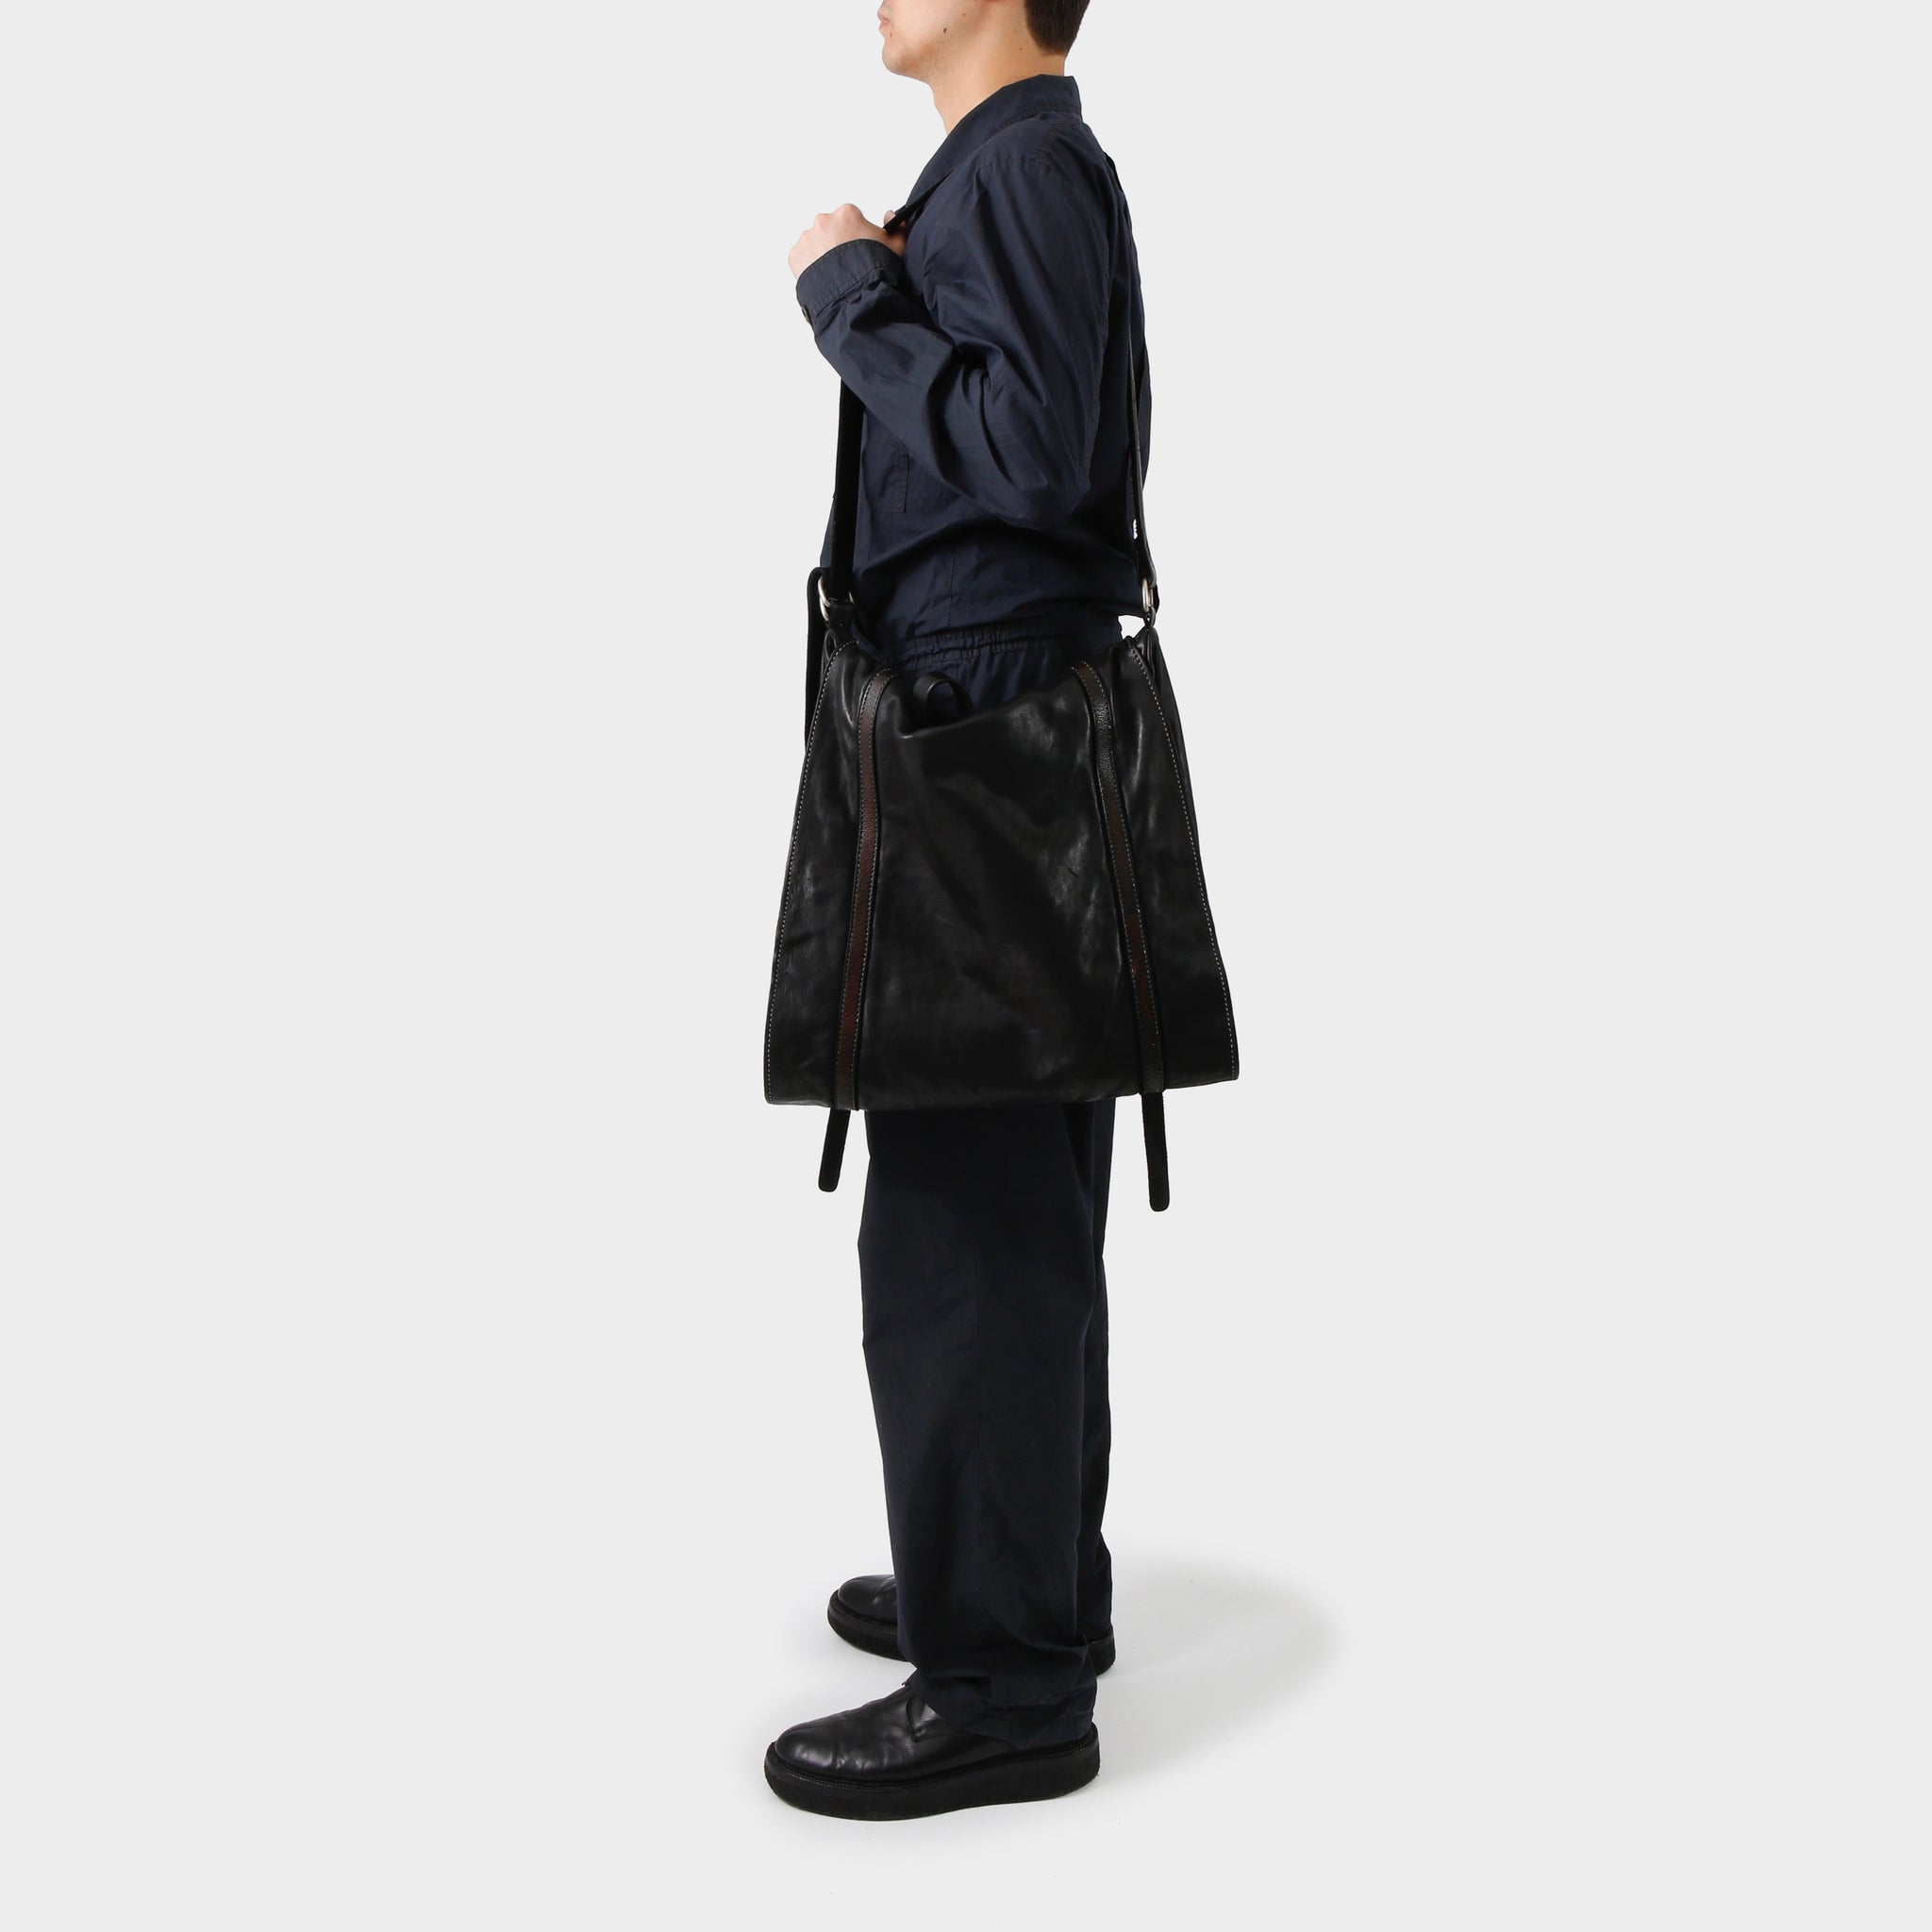 Dries van Noten Navy Cotton Poplin Boiler Suit